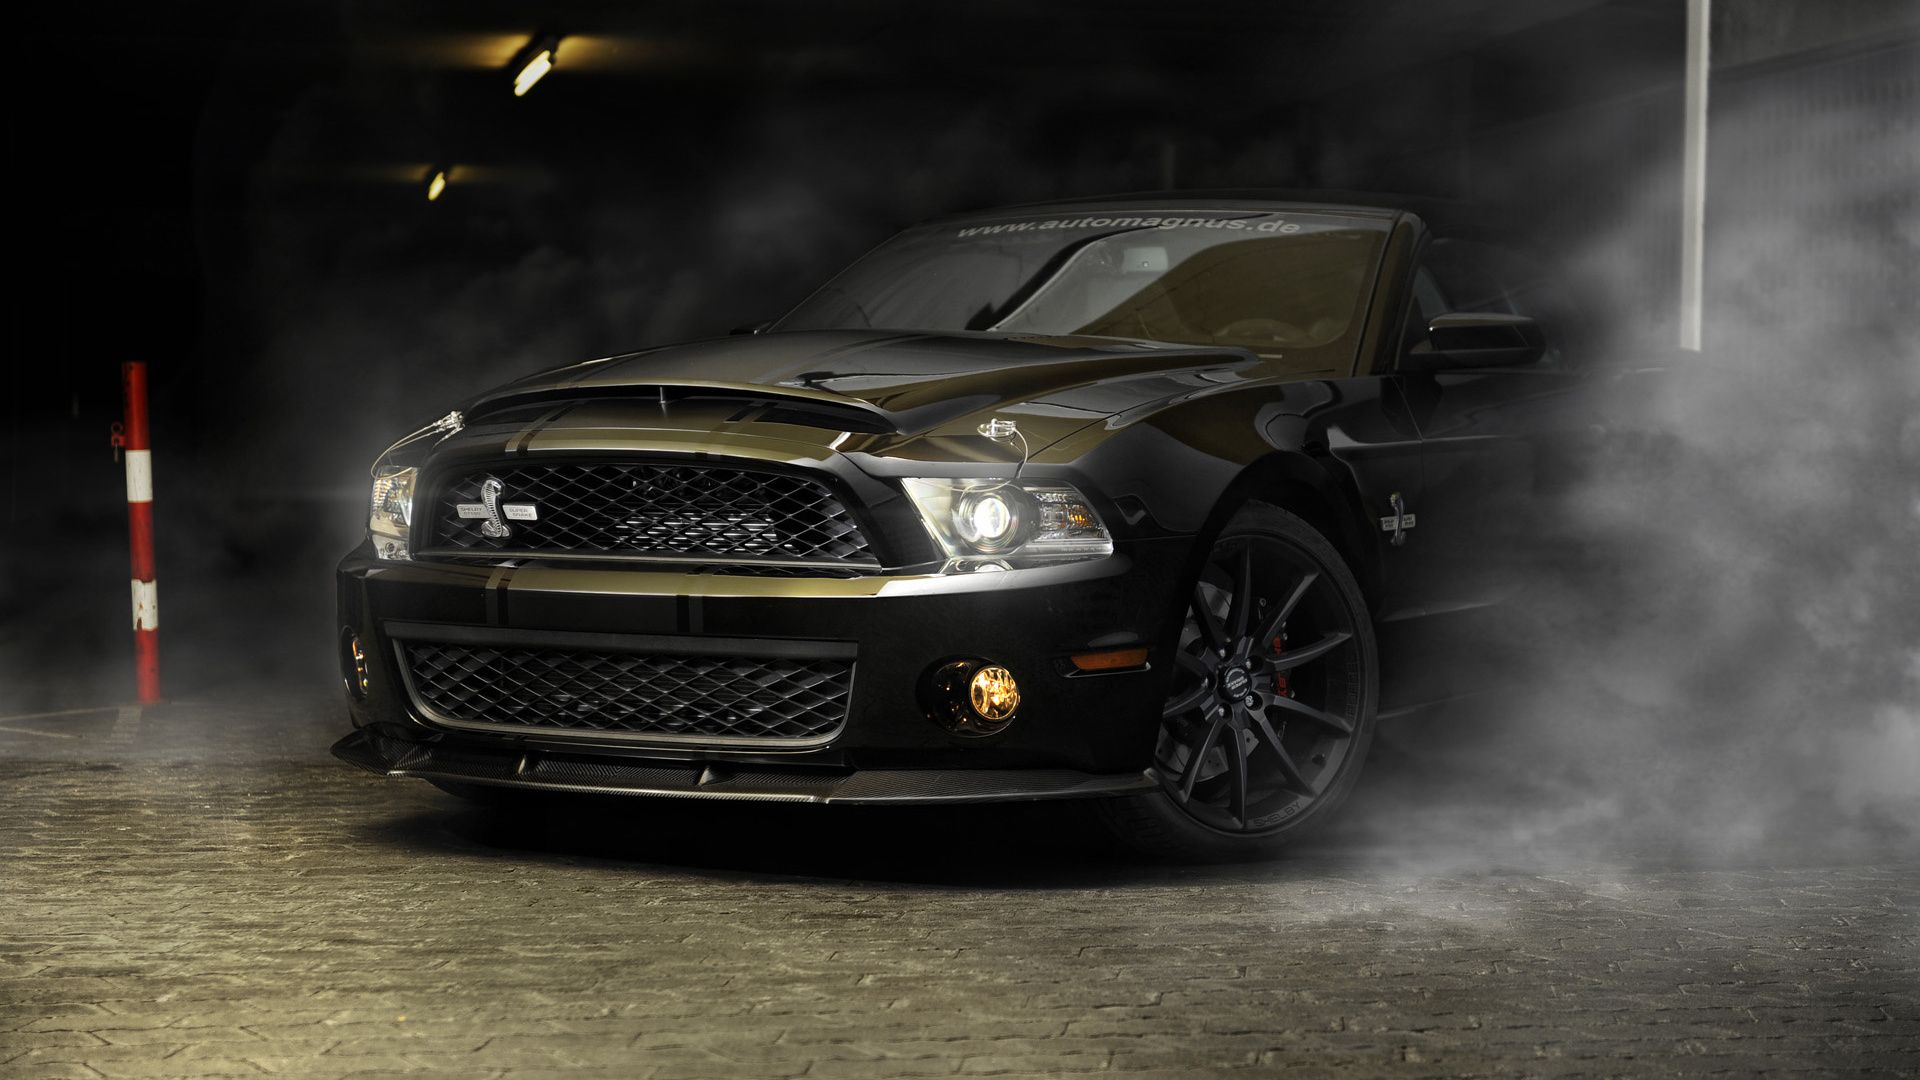 1920x1080 - Ford Mustang GT500 Wallpapers 4